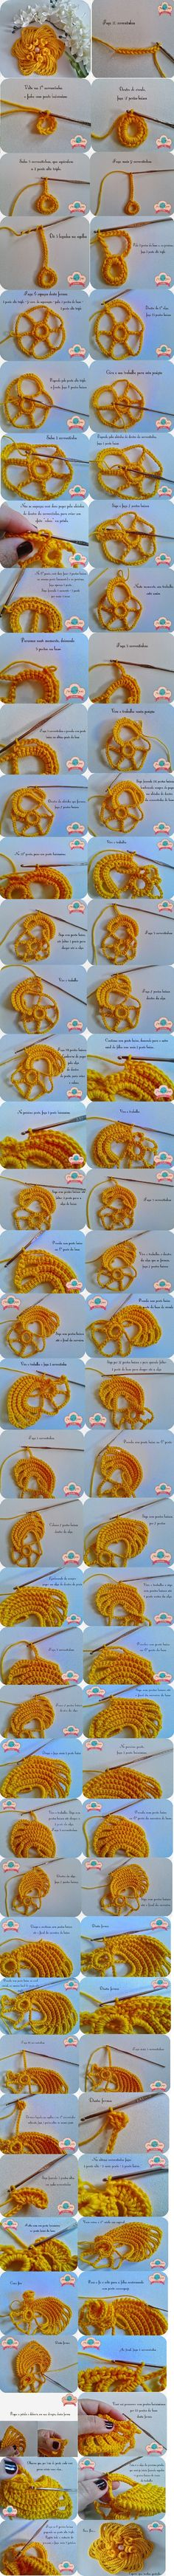 Beautiful crochet flower, step by step tutorial Crochet Vintage, Love Crochet, Irish Crochet, Beautiful Crochet, Freeform Crochet, Crochet Motif, Crochet Lace, Crochet Stitches, Knitted Flowers